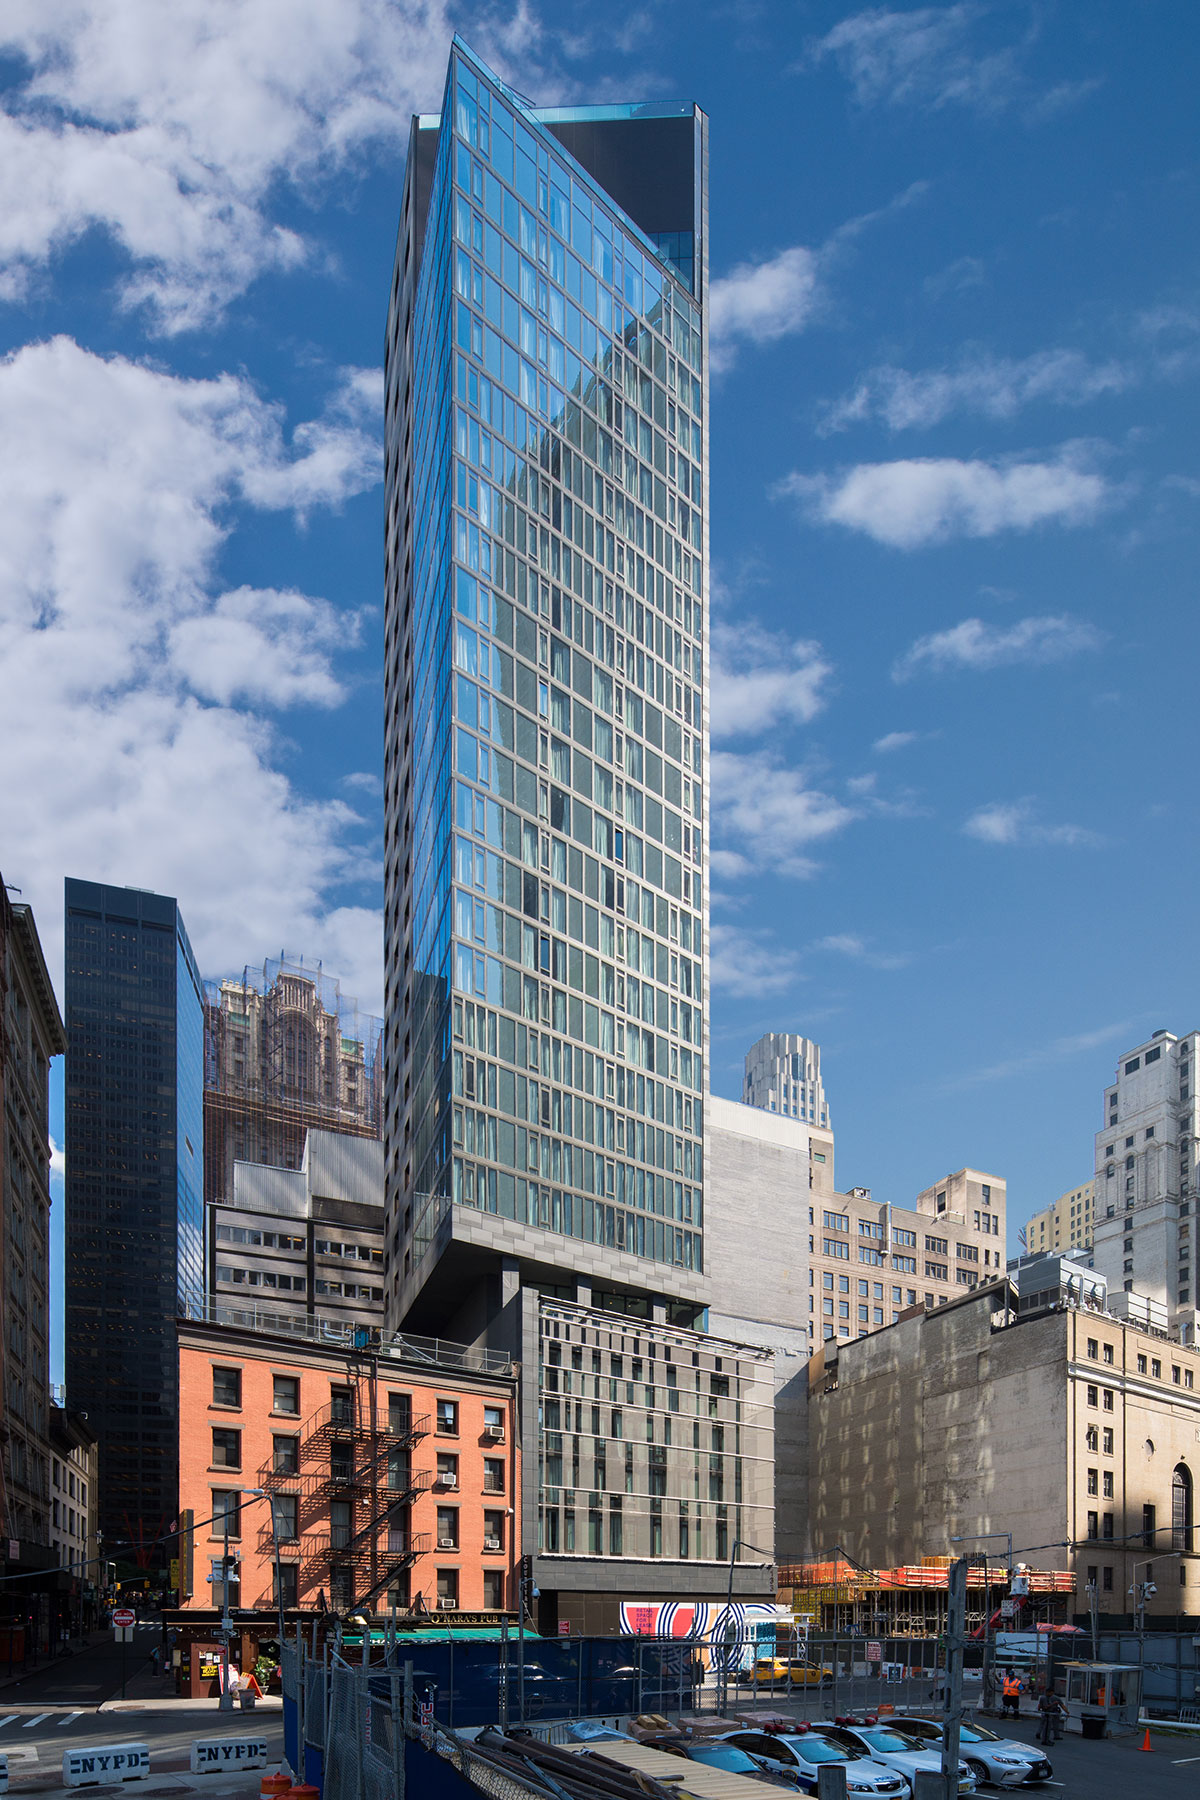 North facade of the World Trade Center Tower Courtyard by Marriott project on the 133 Greenwich street in Downtown Manhattan designed by the architecture studio Danny Forster & Architecture